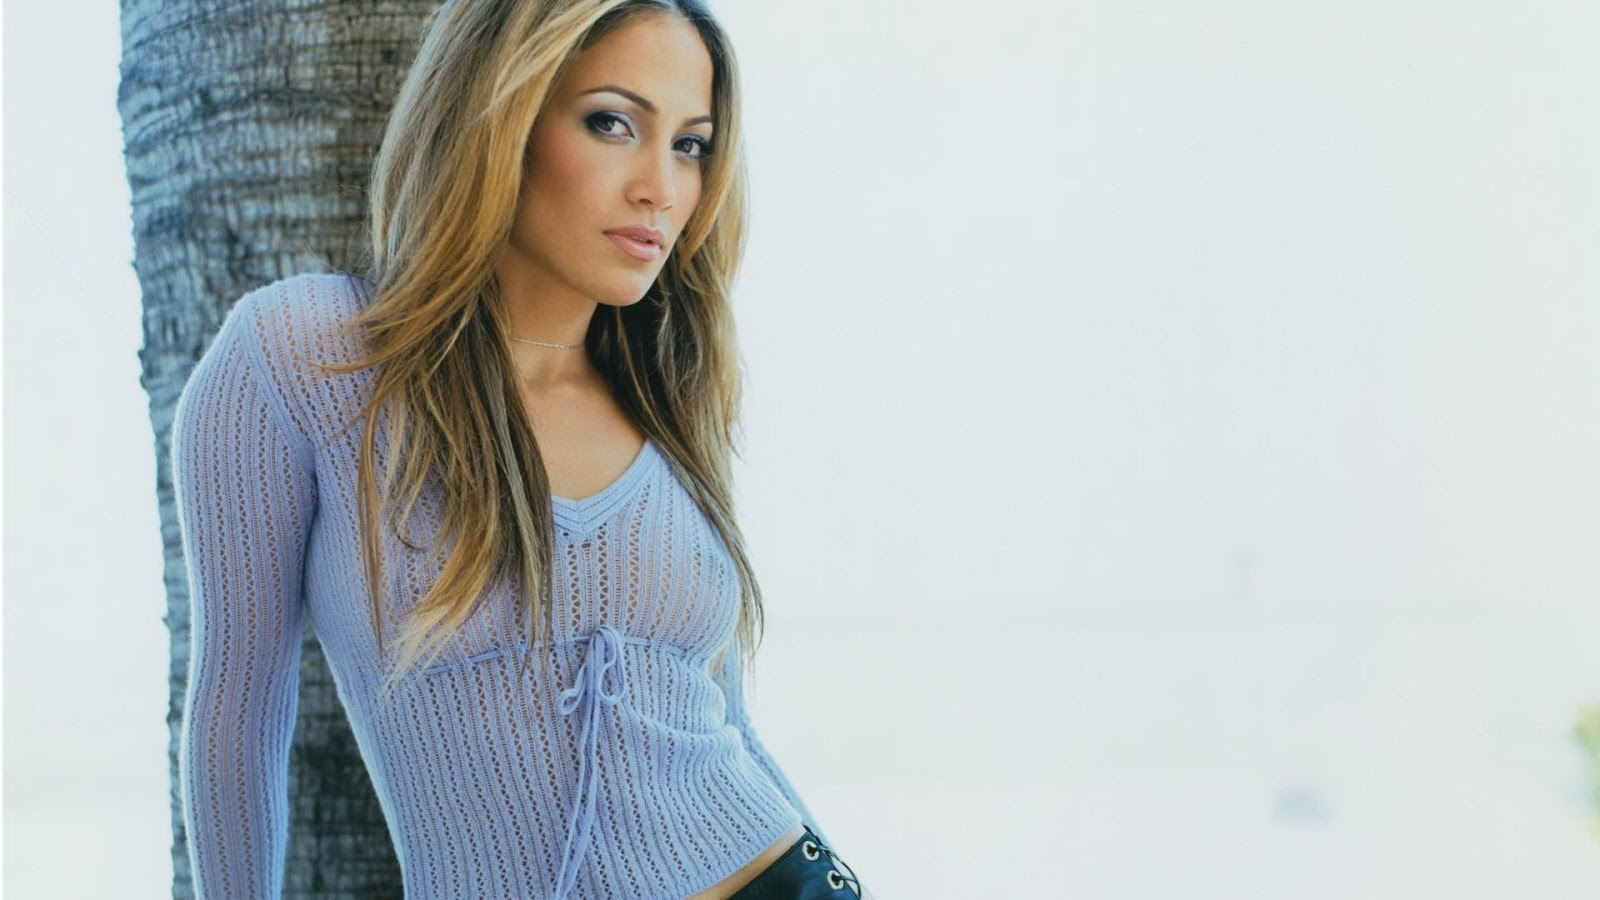 jlo pictures